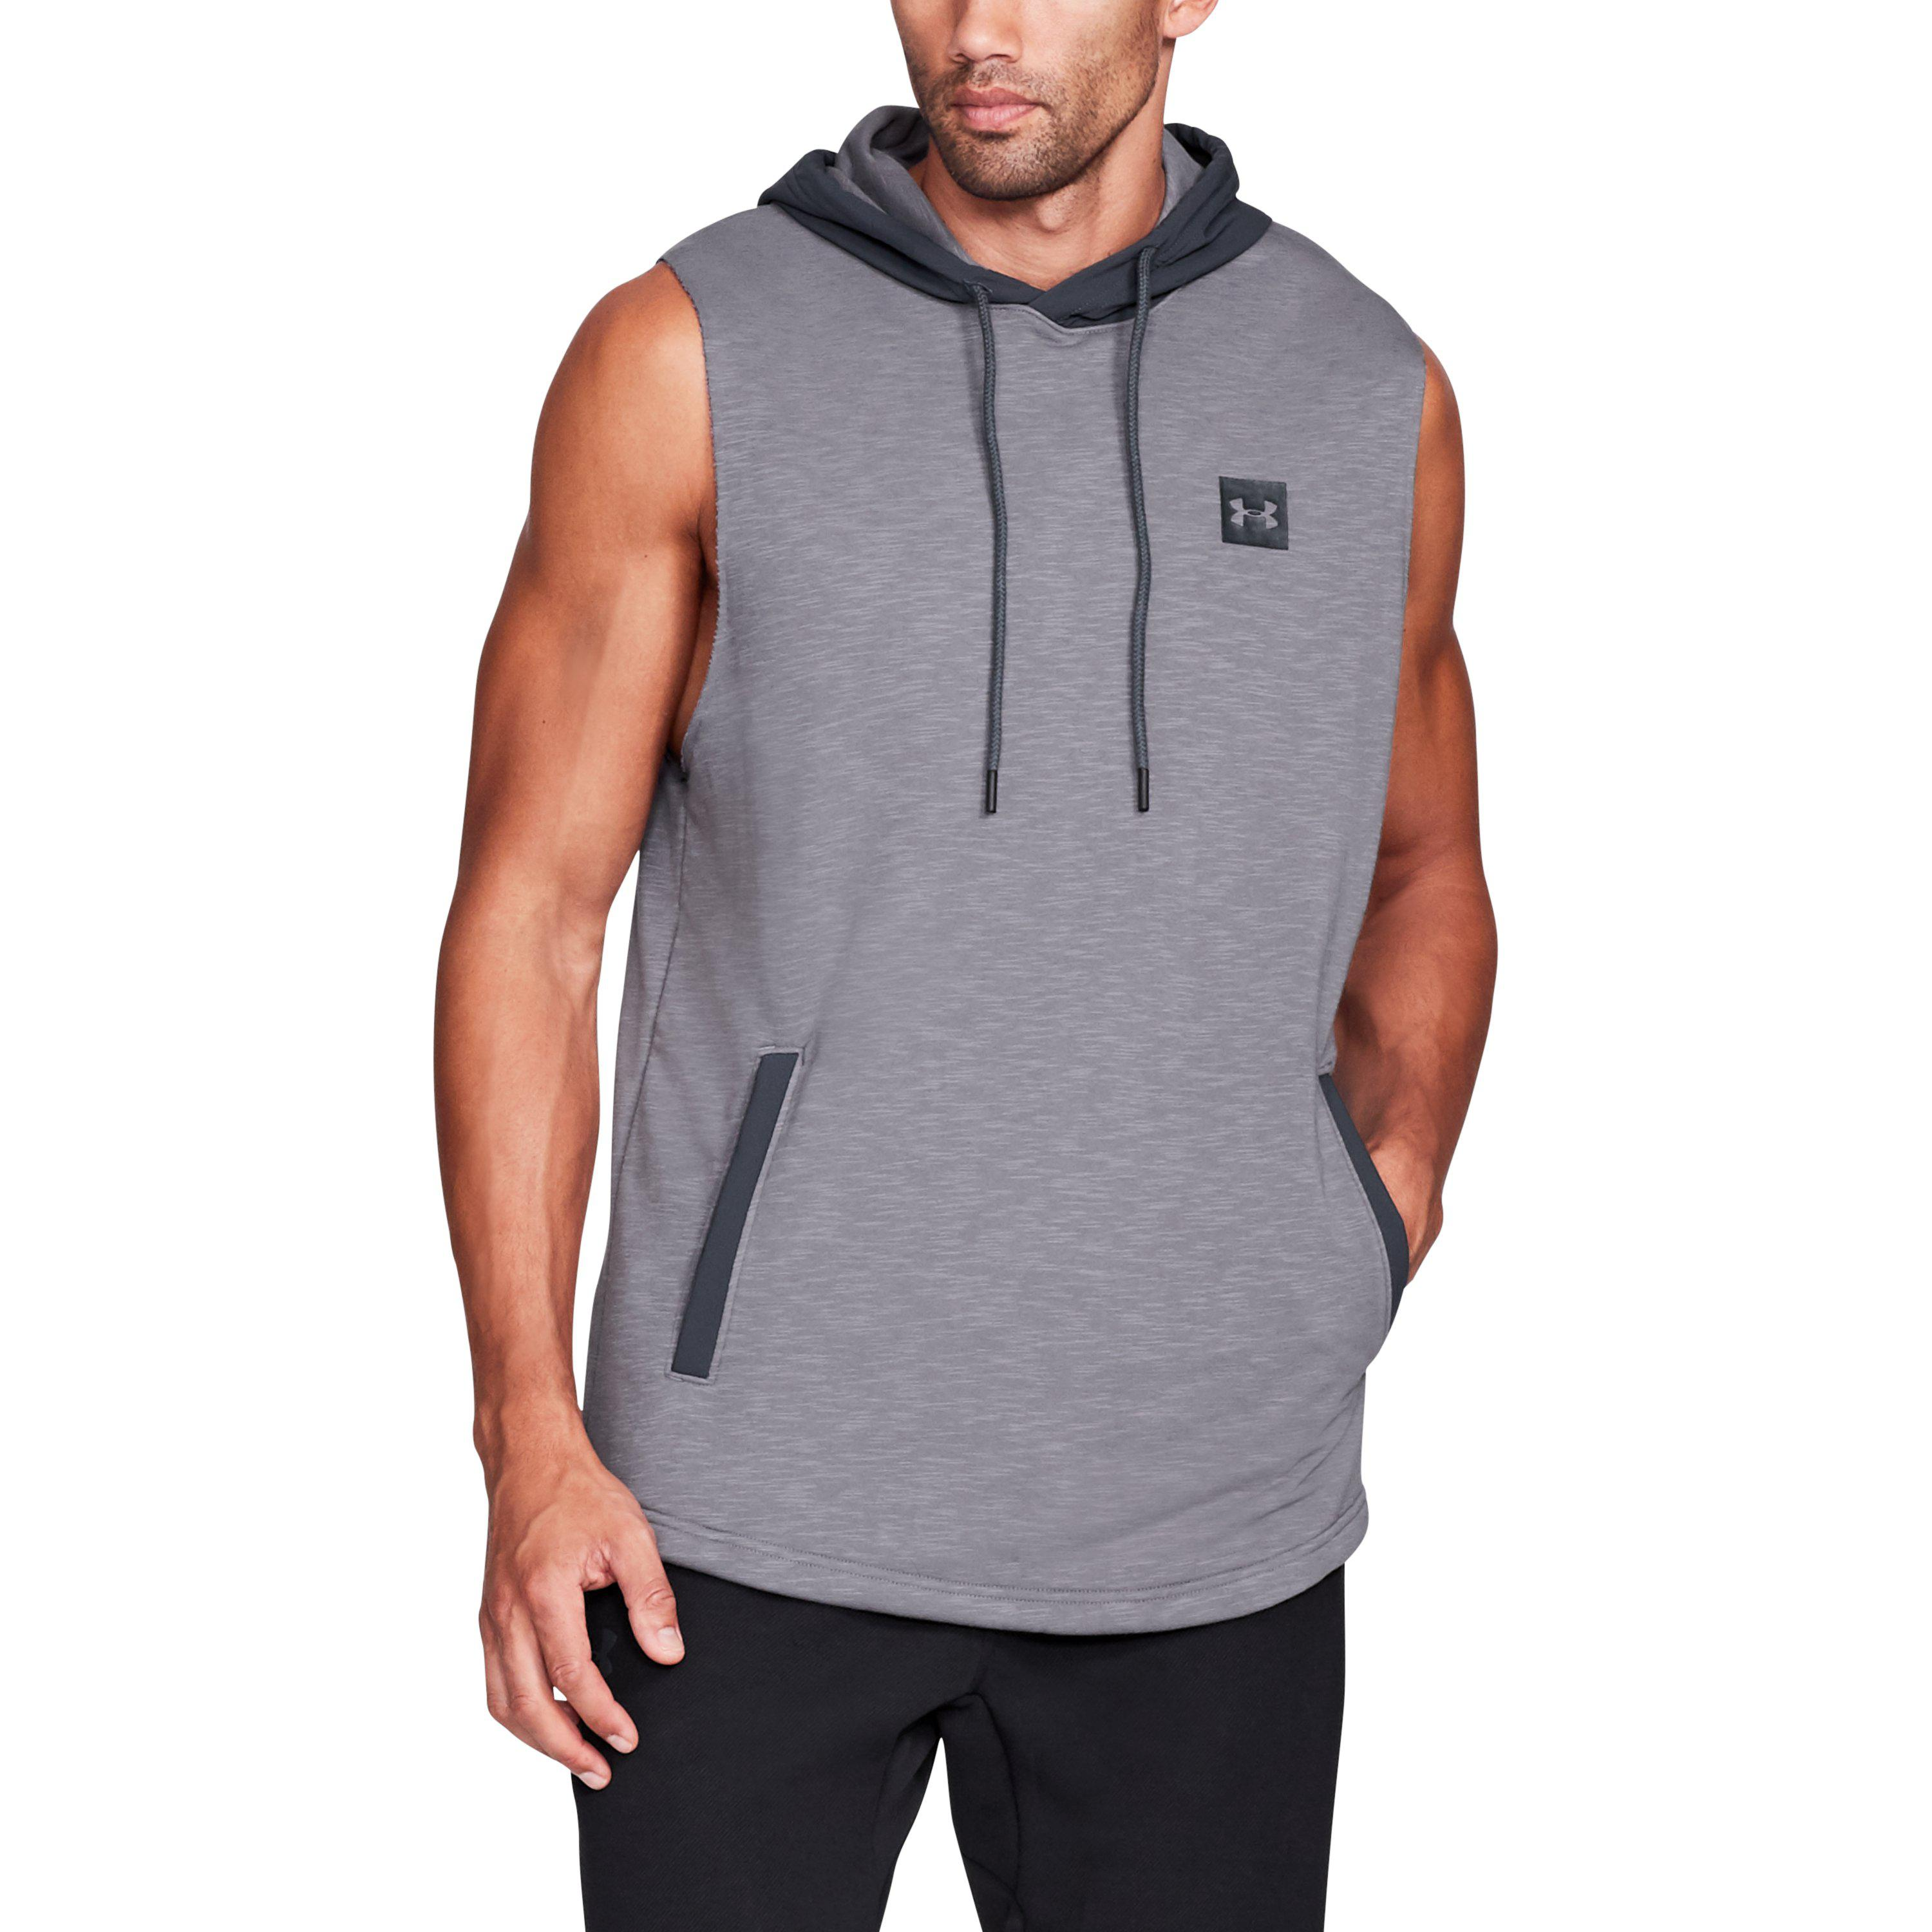 09d38ad70 Under Armour Men's Ua Sportstyle Sleeveless Hoodie in Gray for Men ...